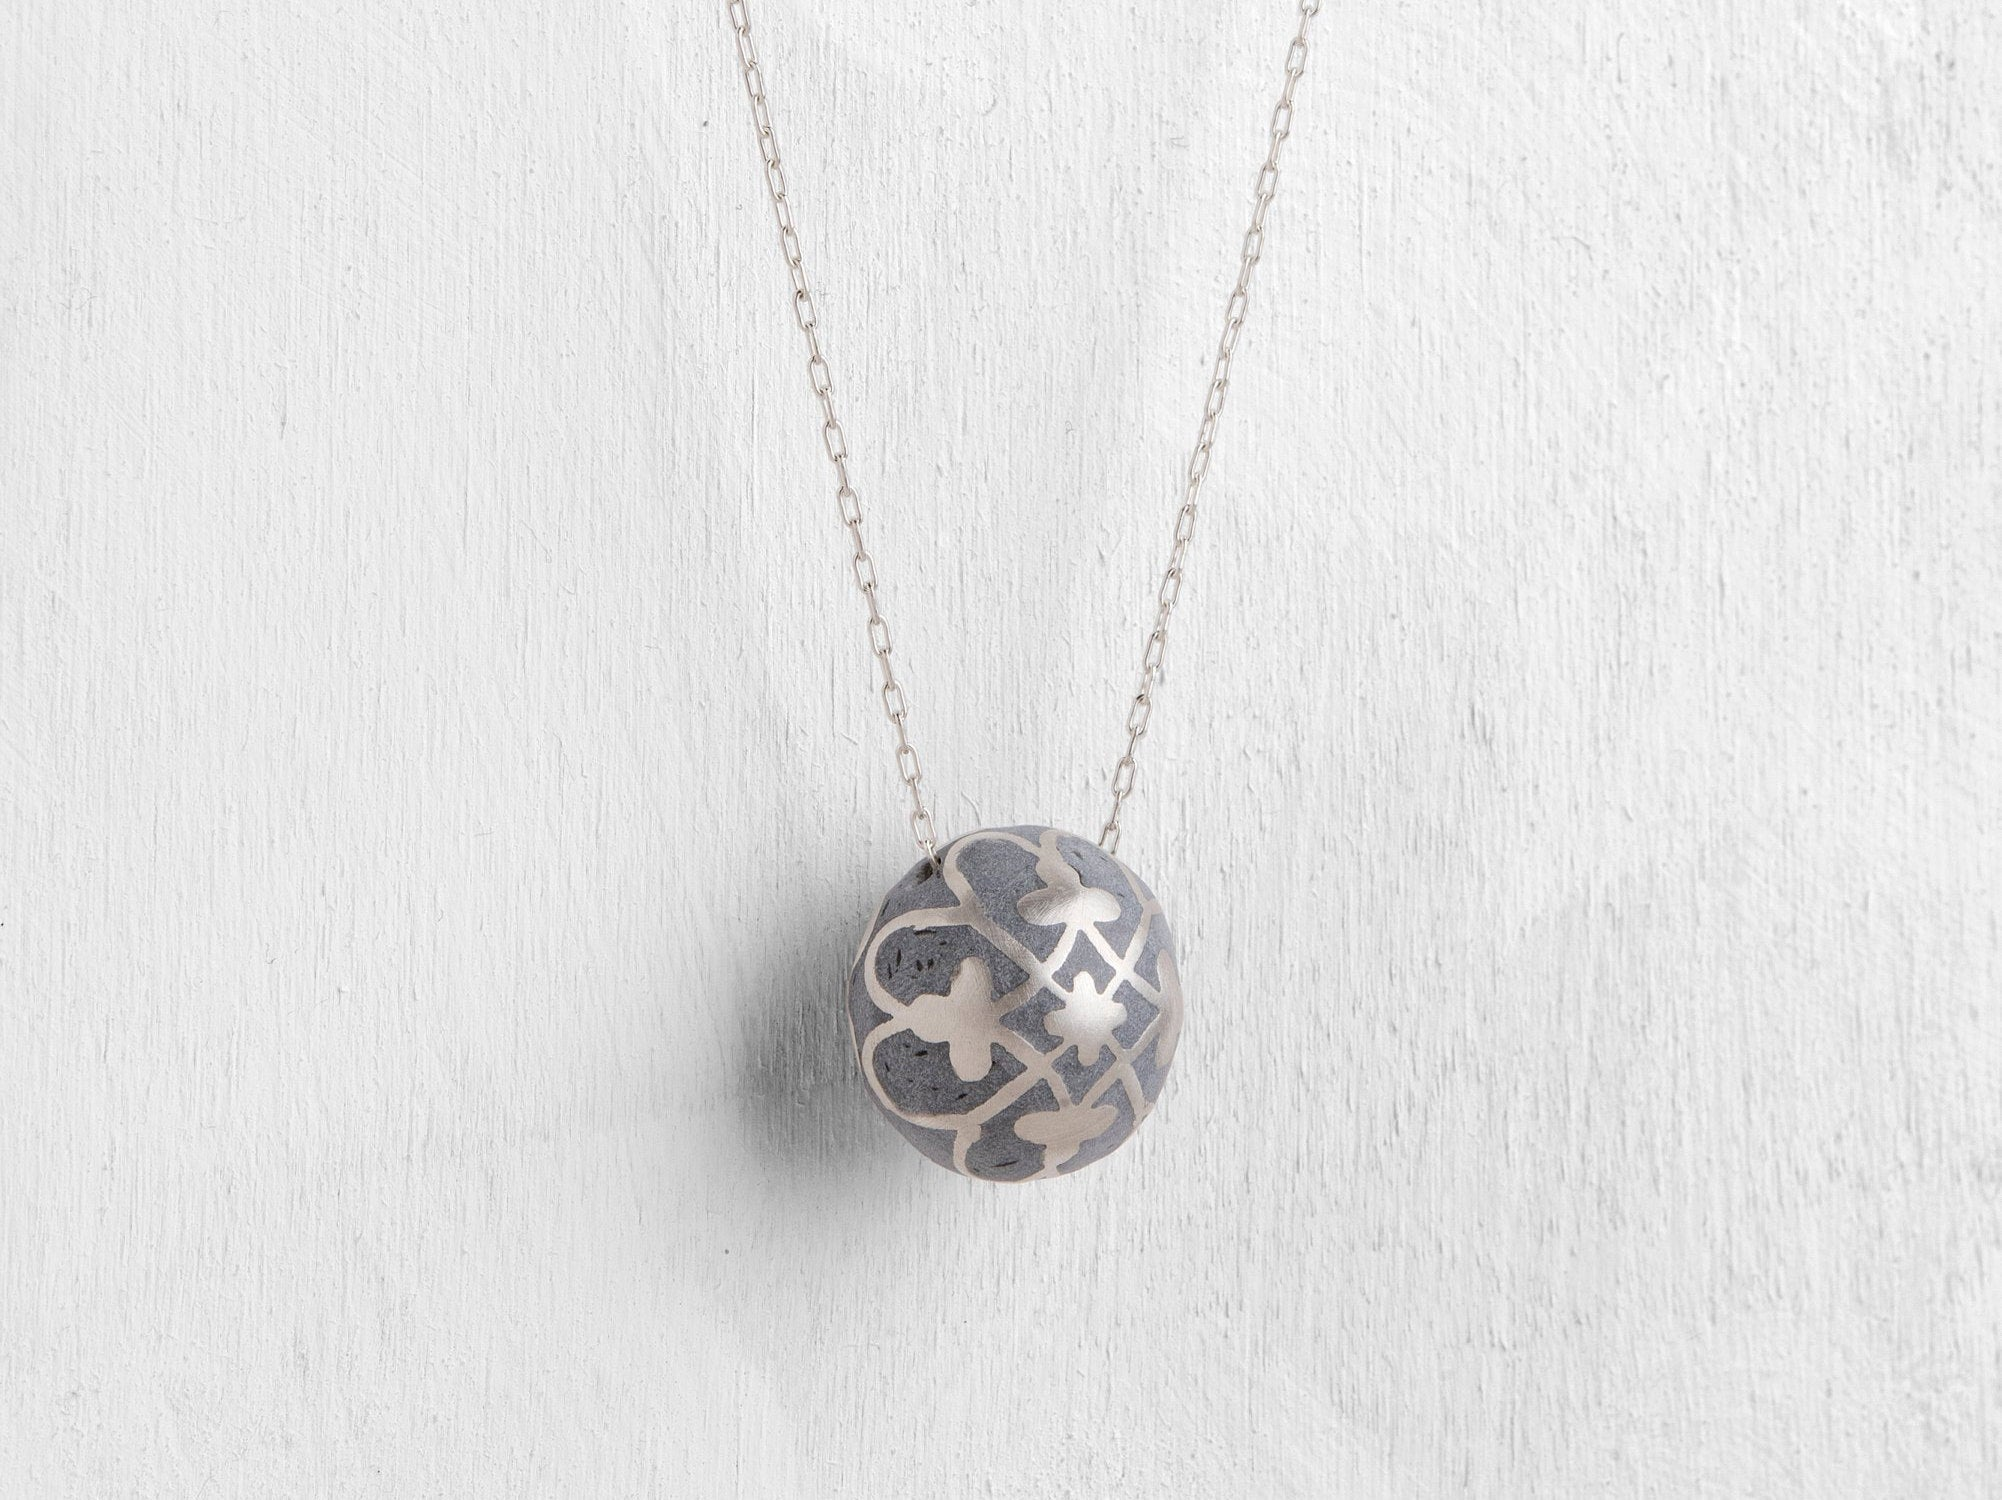 Silver Ball Necklace, Long delicate pendent, Ethnic pattern, hand made Necklace, Everyday Minimalist pendent, polymer concrete necklace - hs